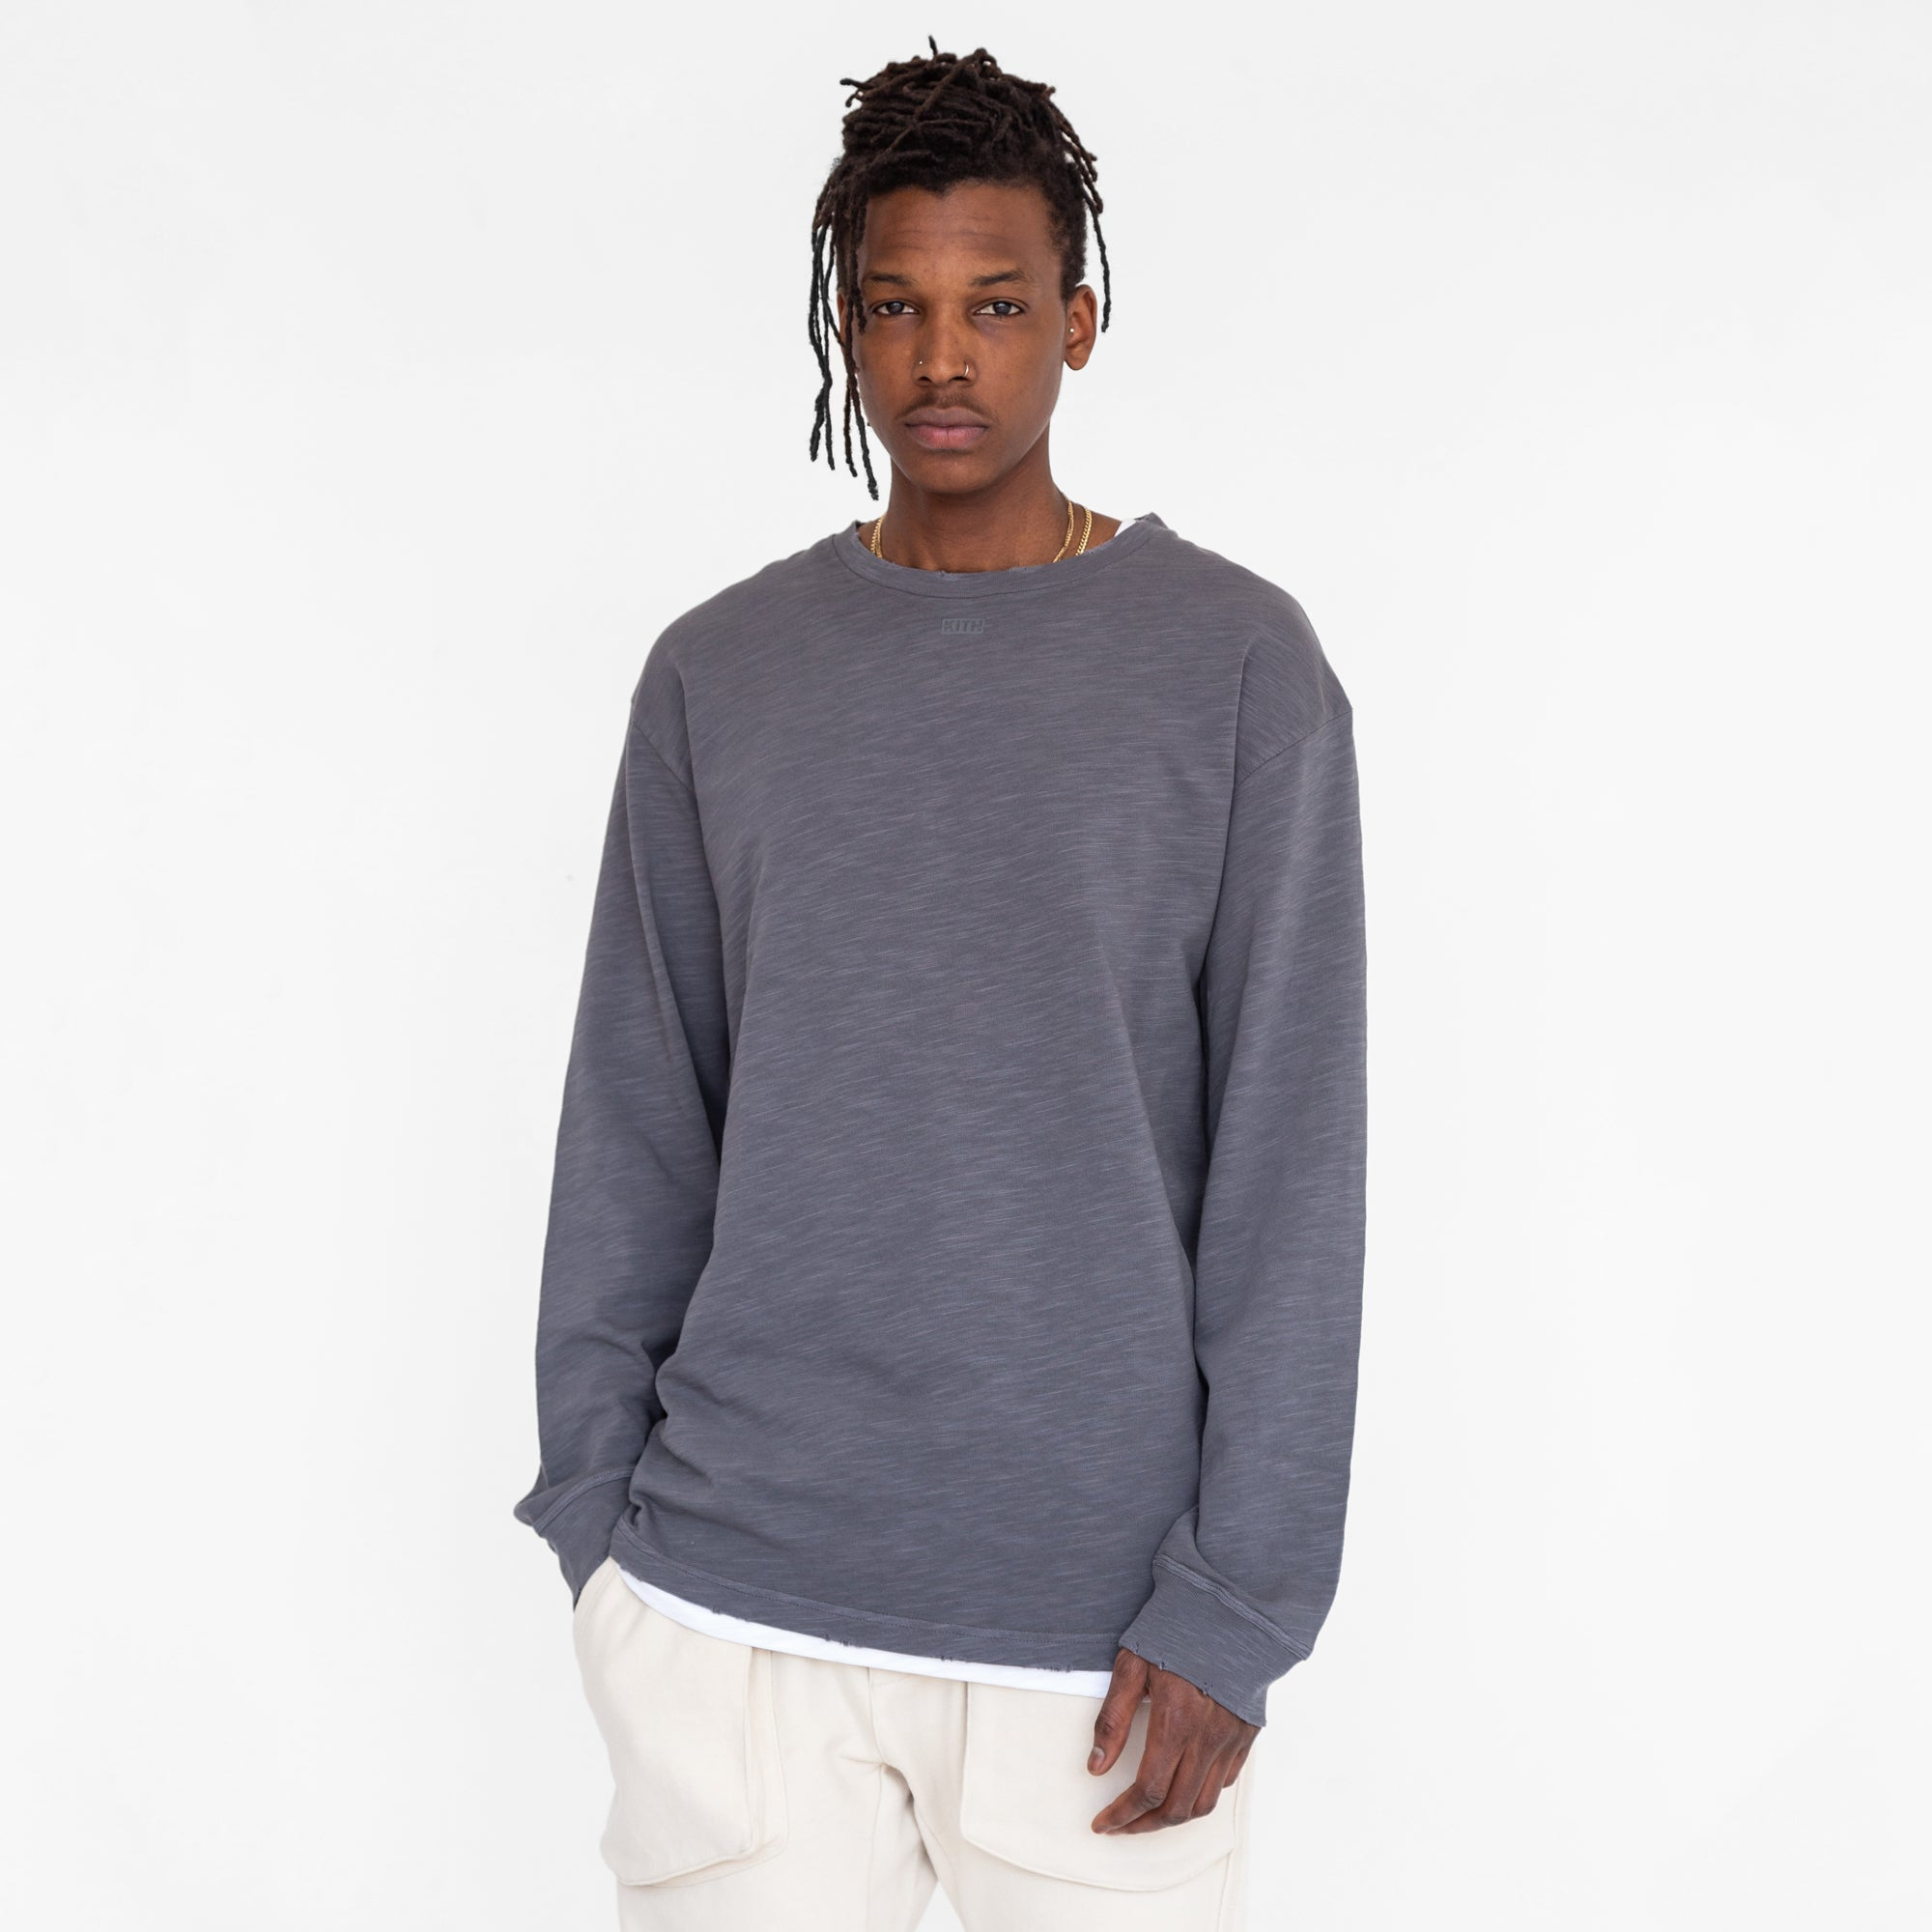 Kith JFK L/S Tee - Iron Gate